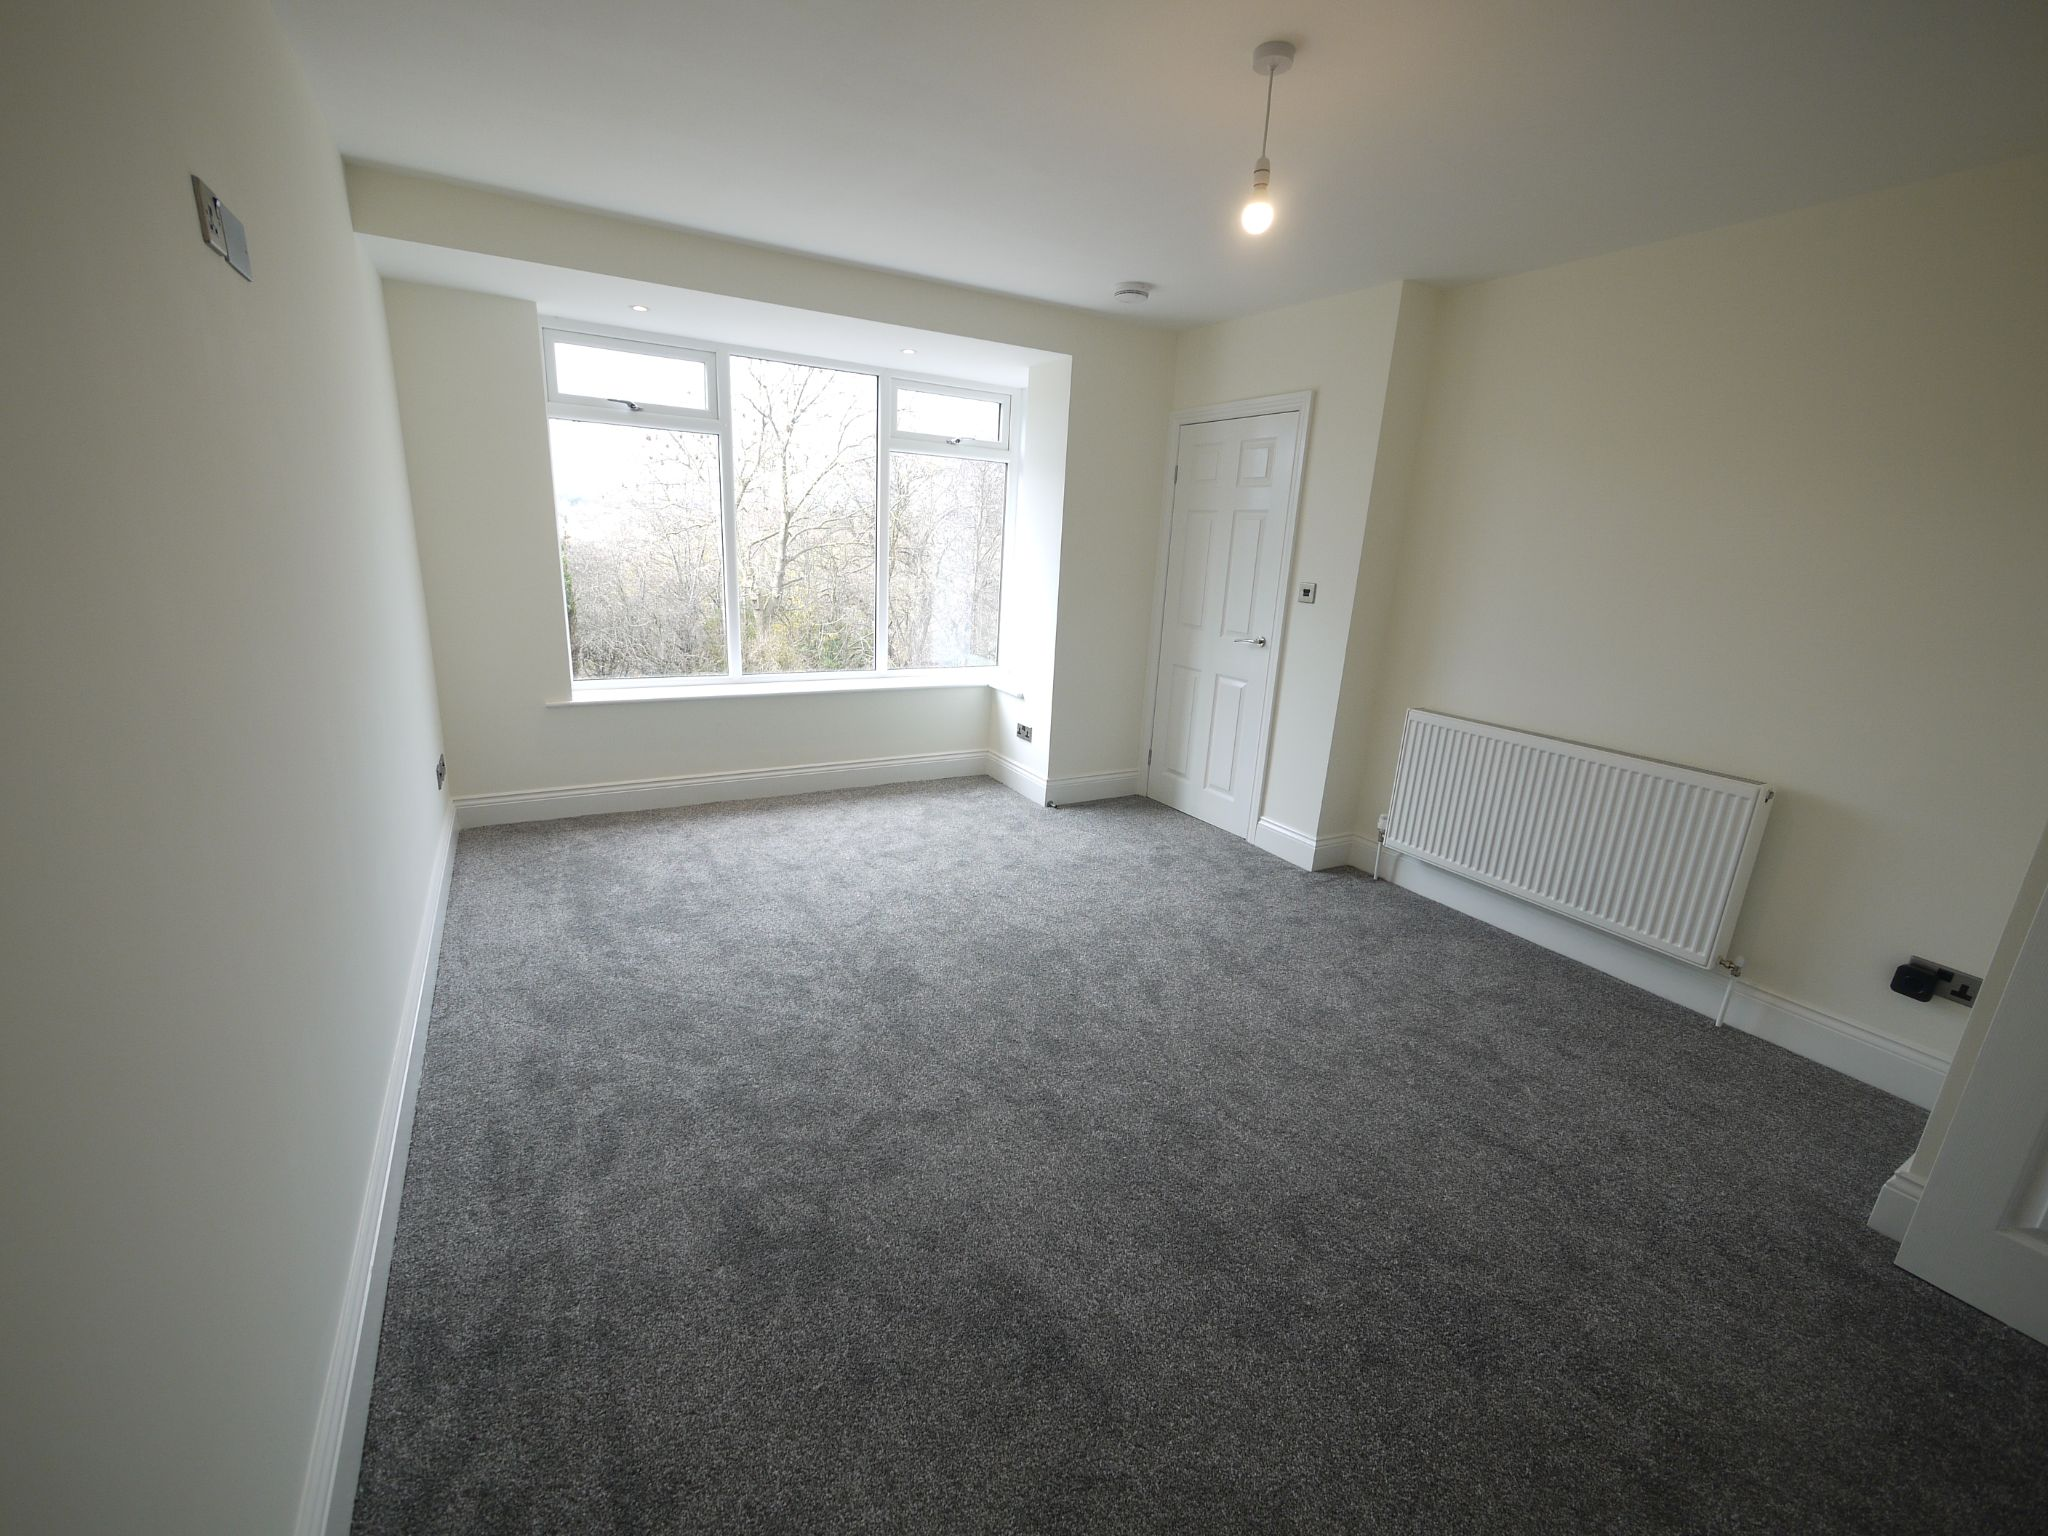 3 bedroom end terraced house SSTC in Brighouse - Lounge.